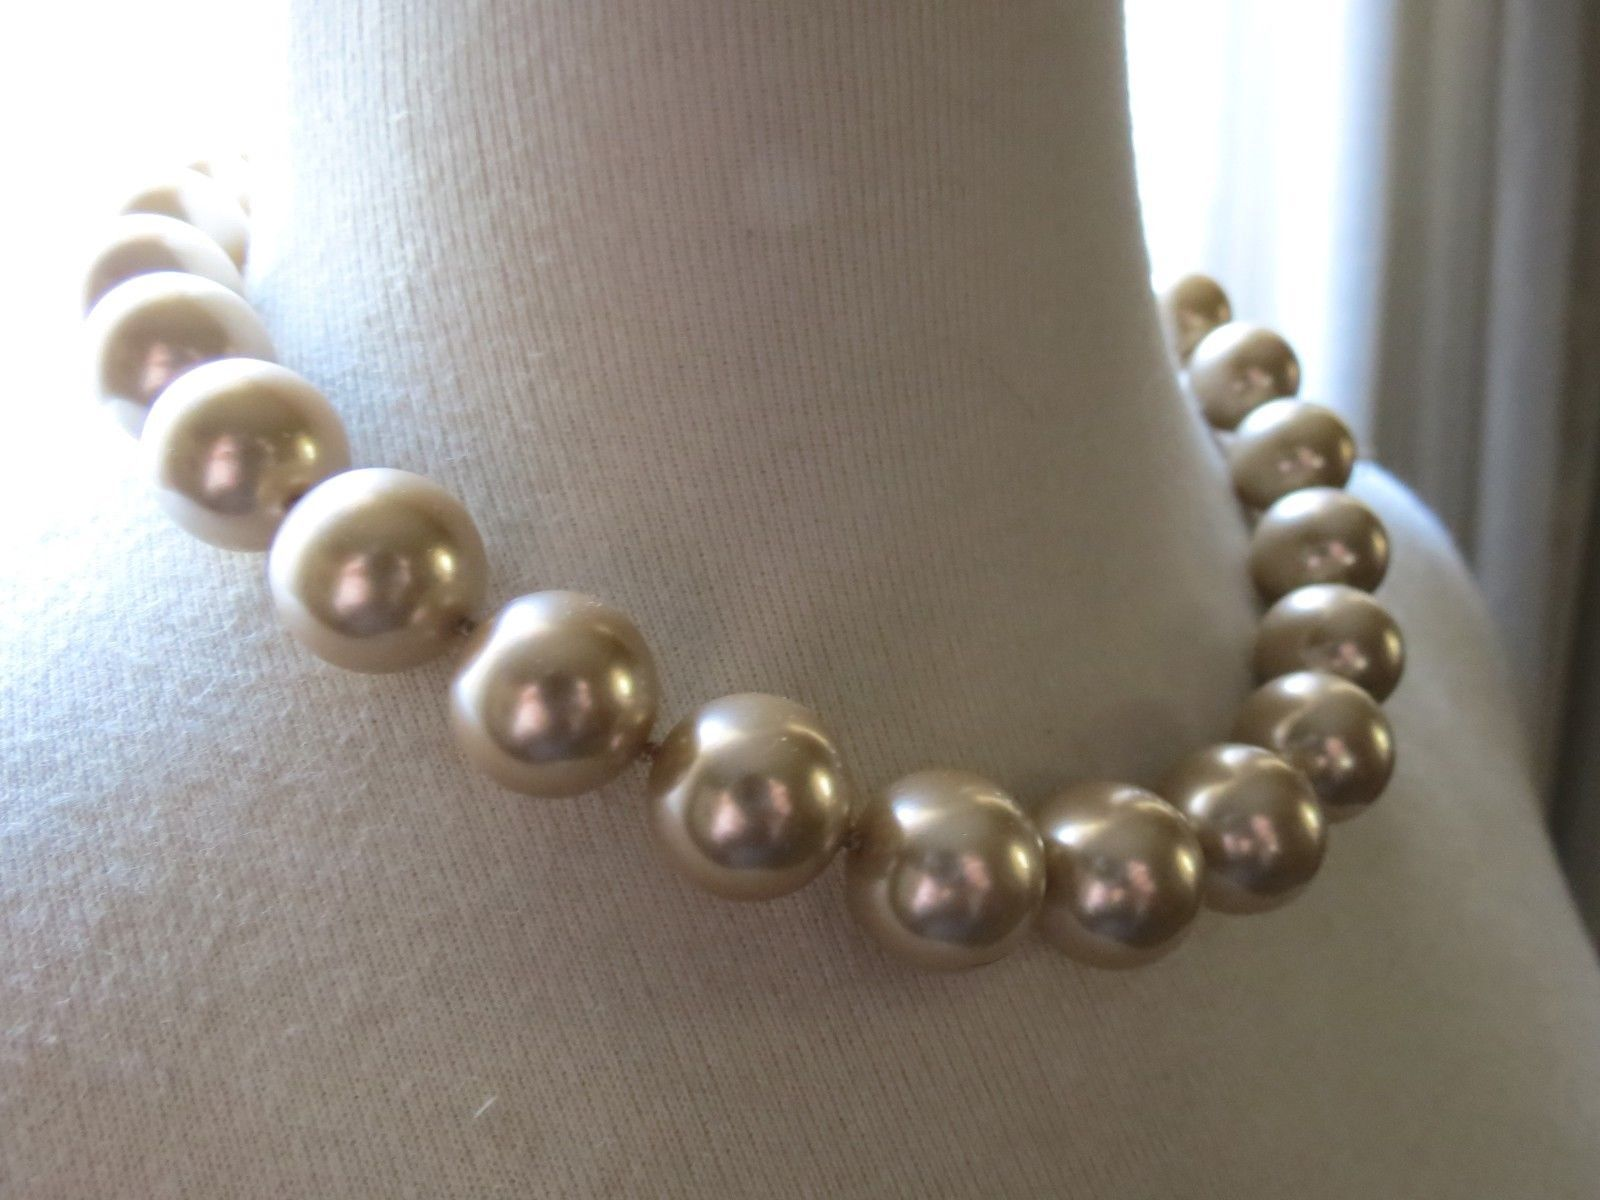 VTG Monet Big Pearl Necklace Hand Knotted Sable Cream Lobster 16mm Glass Beads image 5